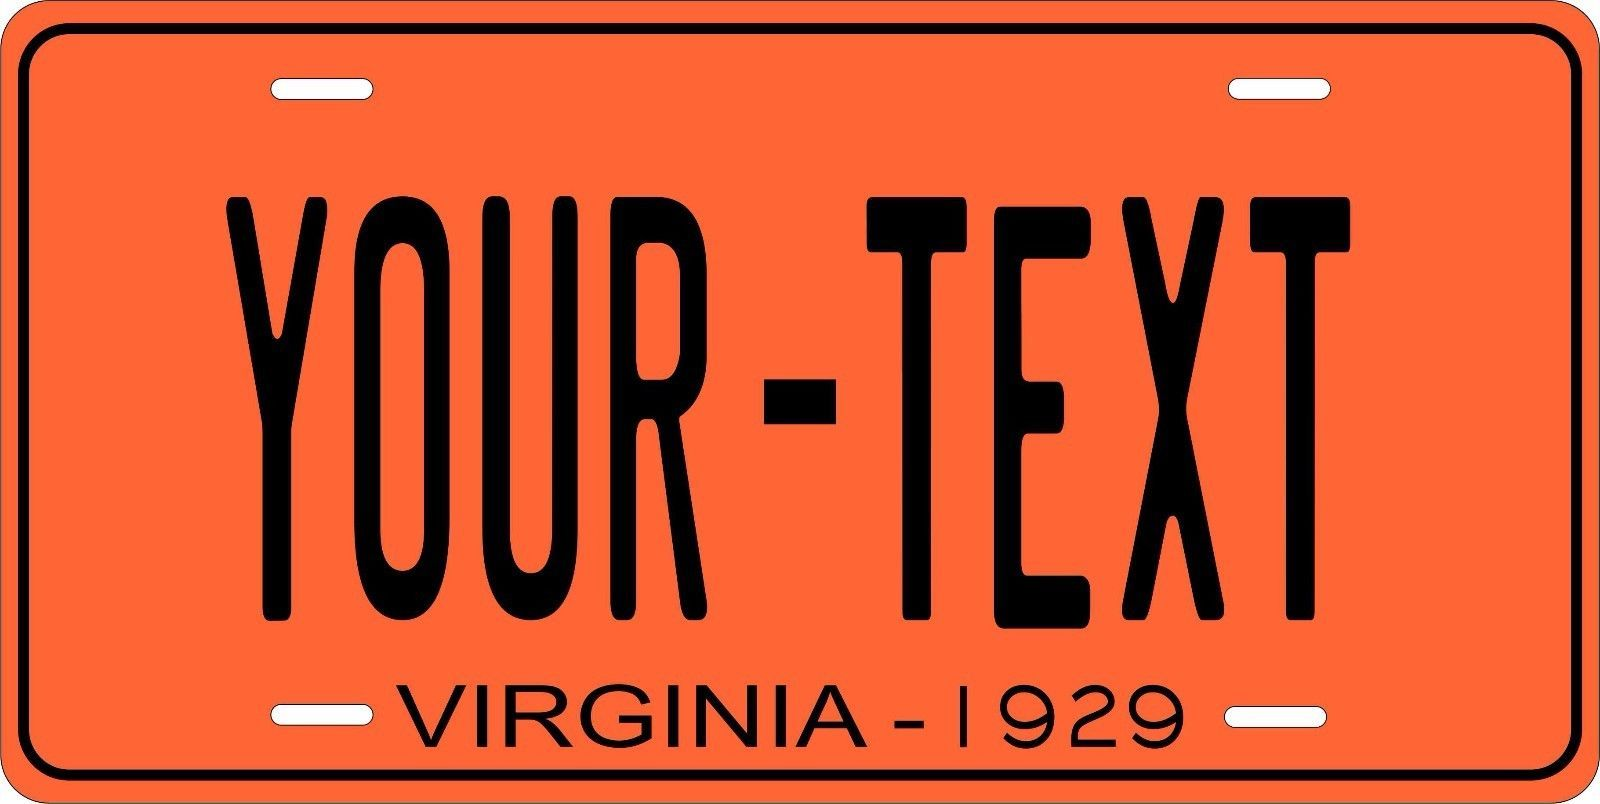 Virginia 1939 License Plate Personalized Custom Auto Bike Motorcycle Moped Tag